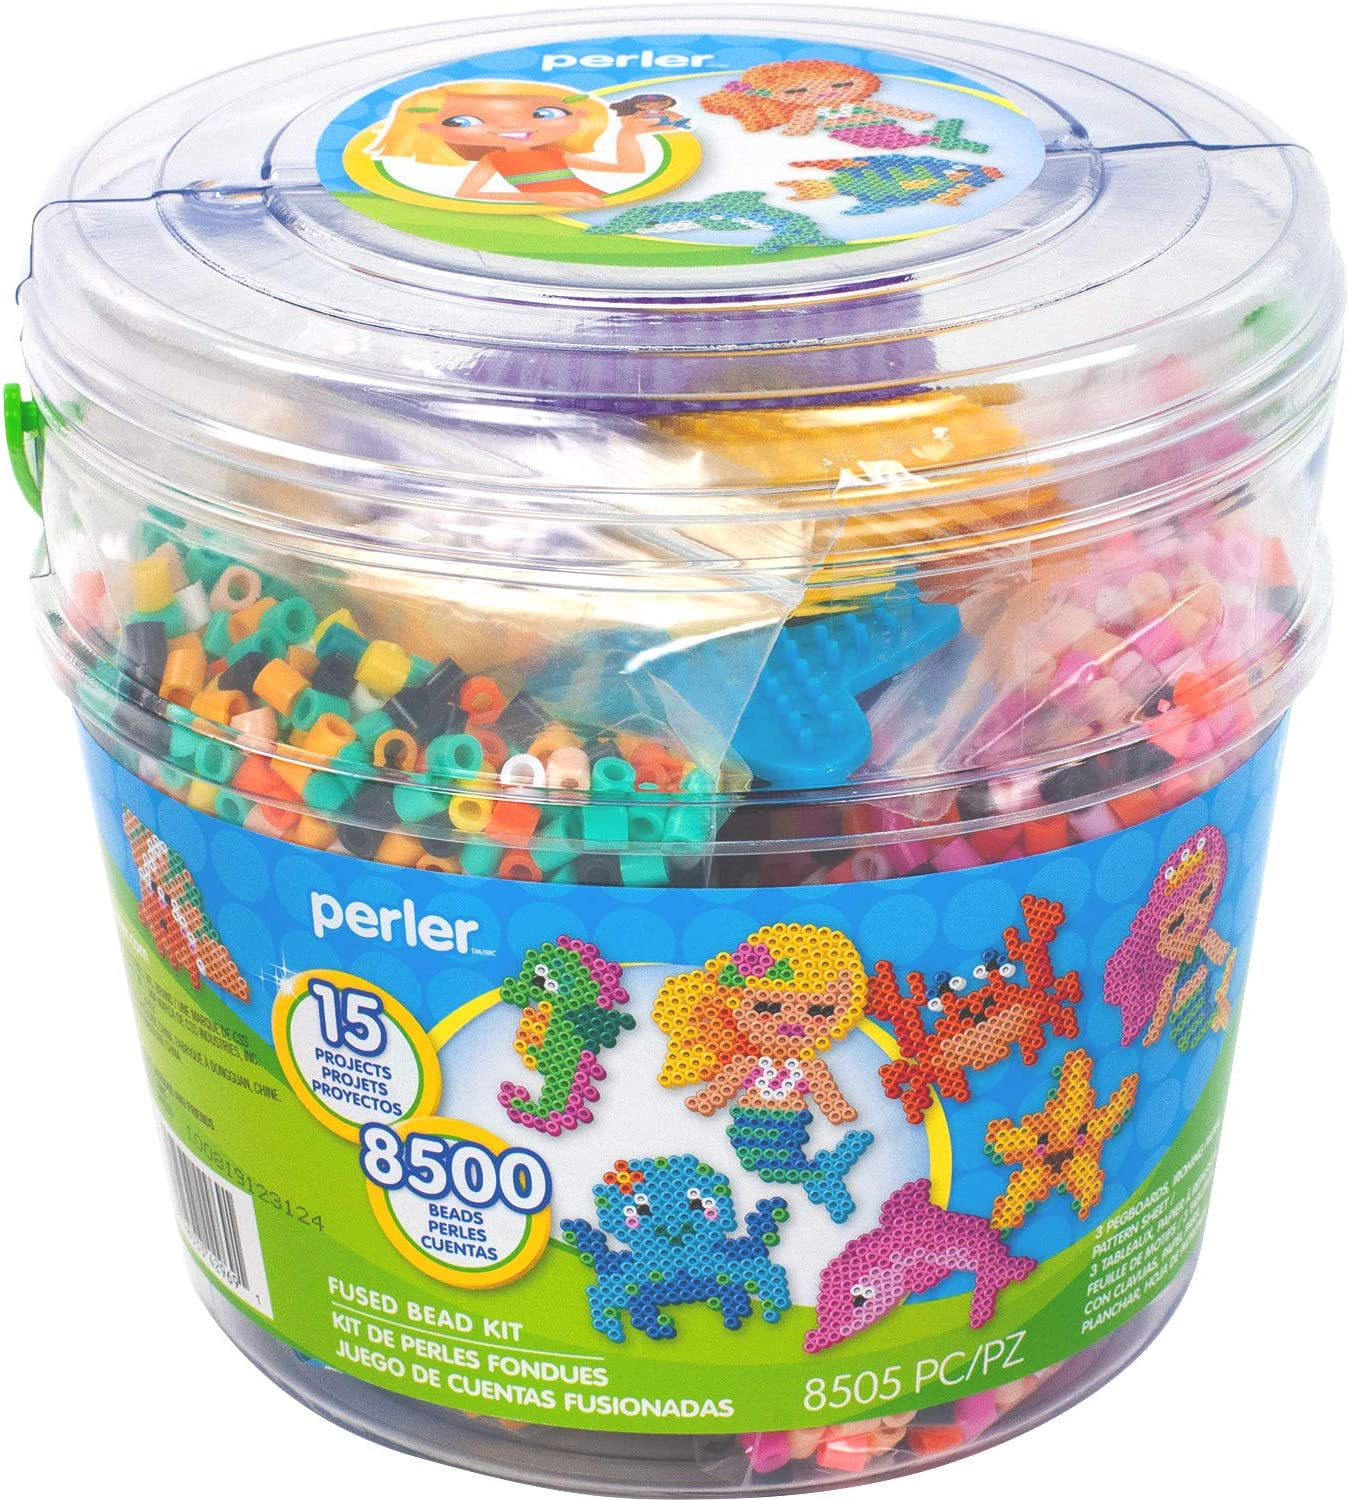 Perler Beads Emoji Bucket 8500pc 6.5L x 6.5W x 6H